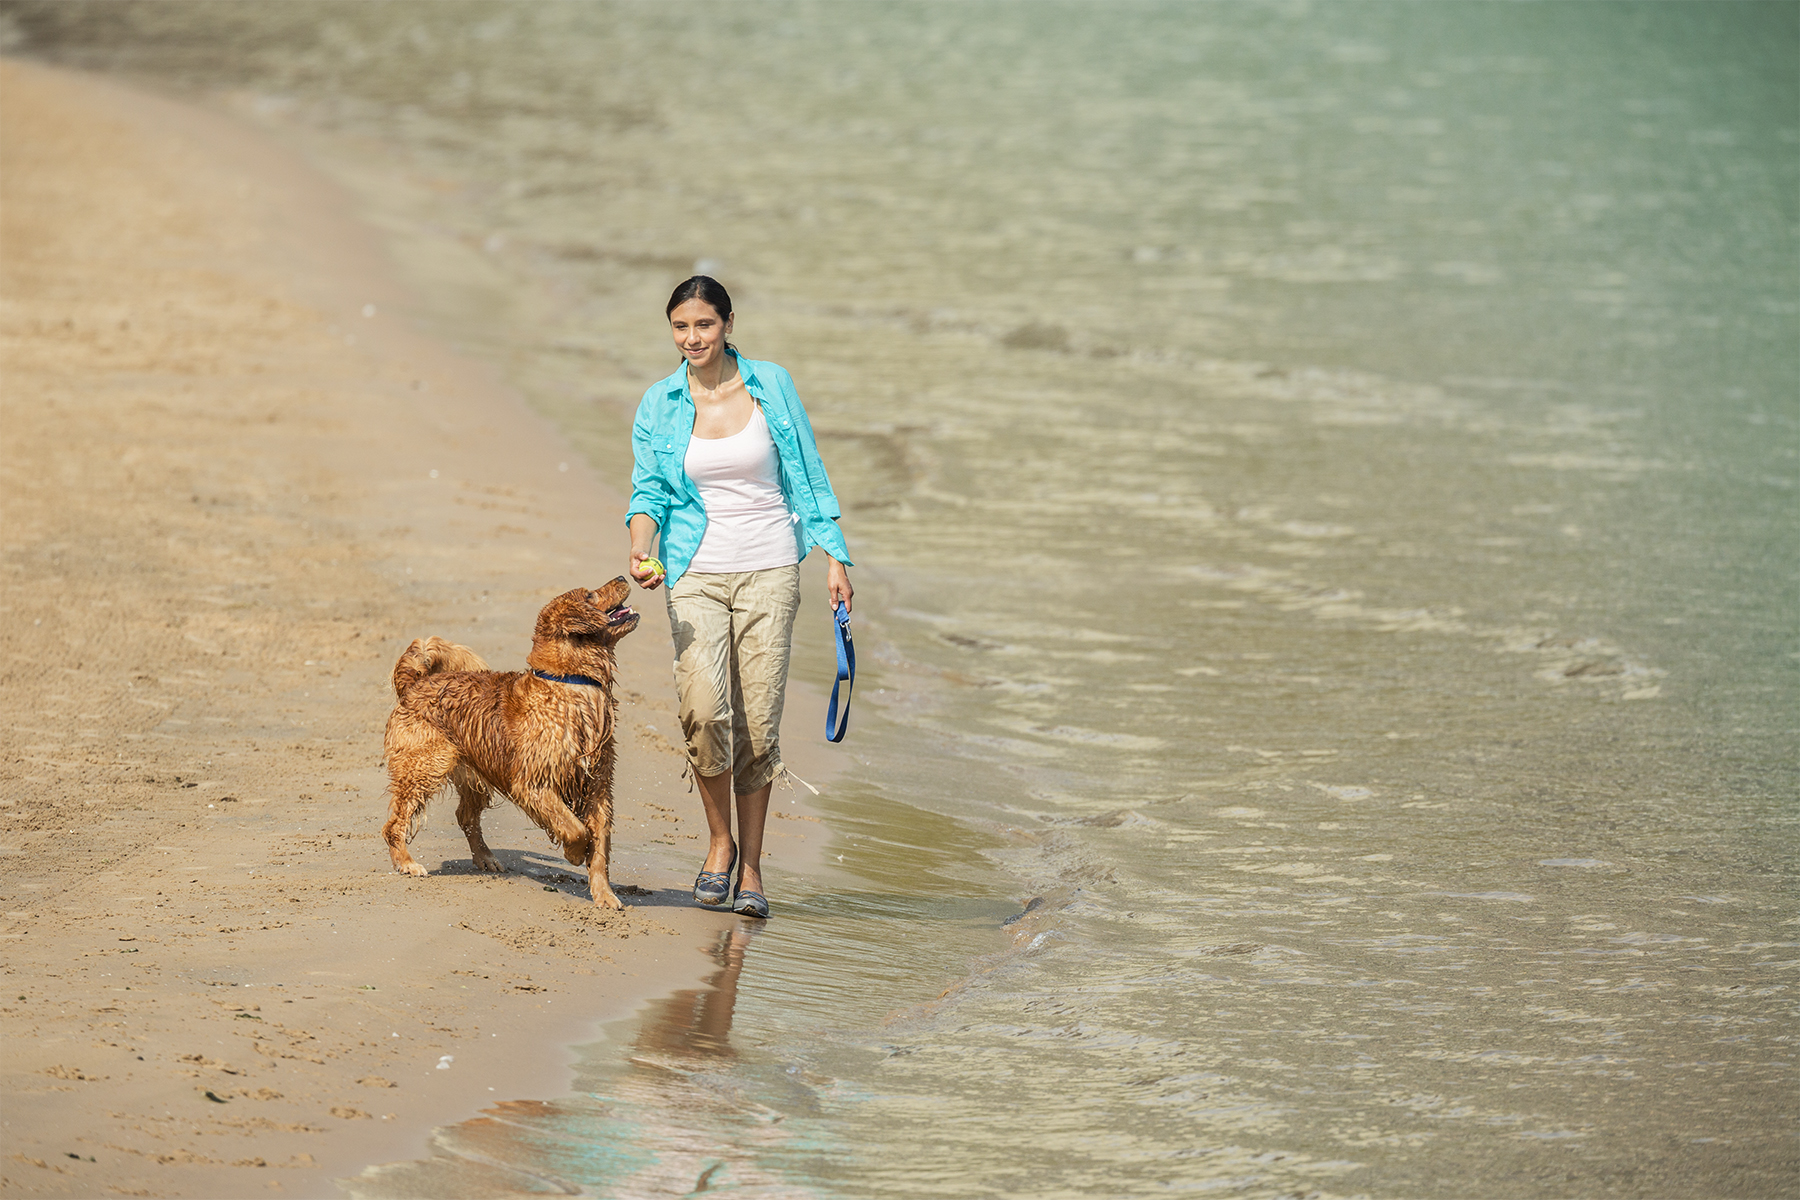 Woman-Dog-BeachWalking-411_r1.jpg